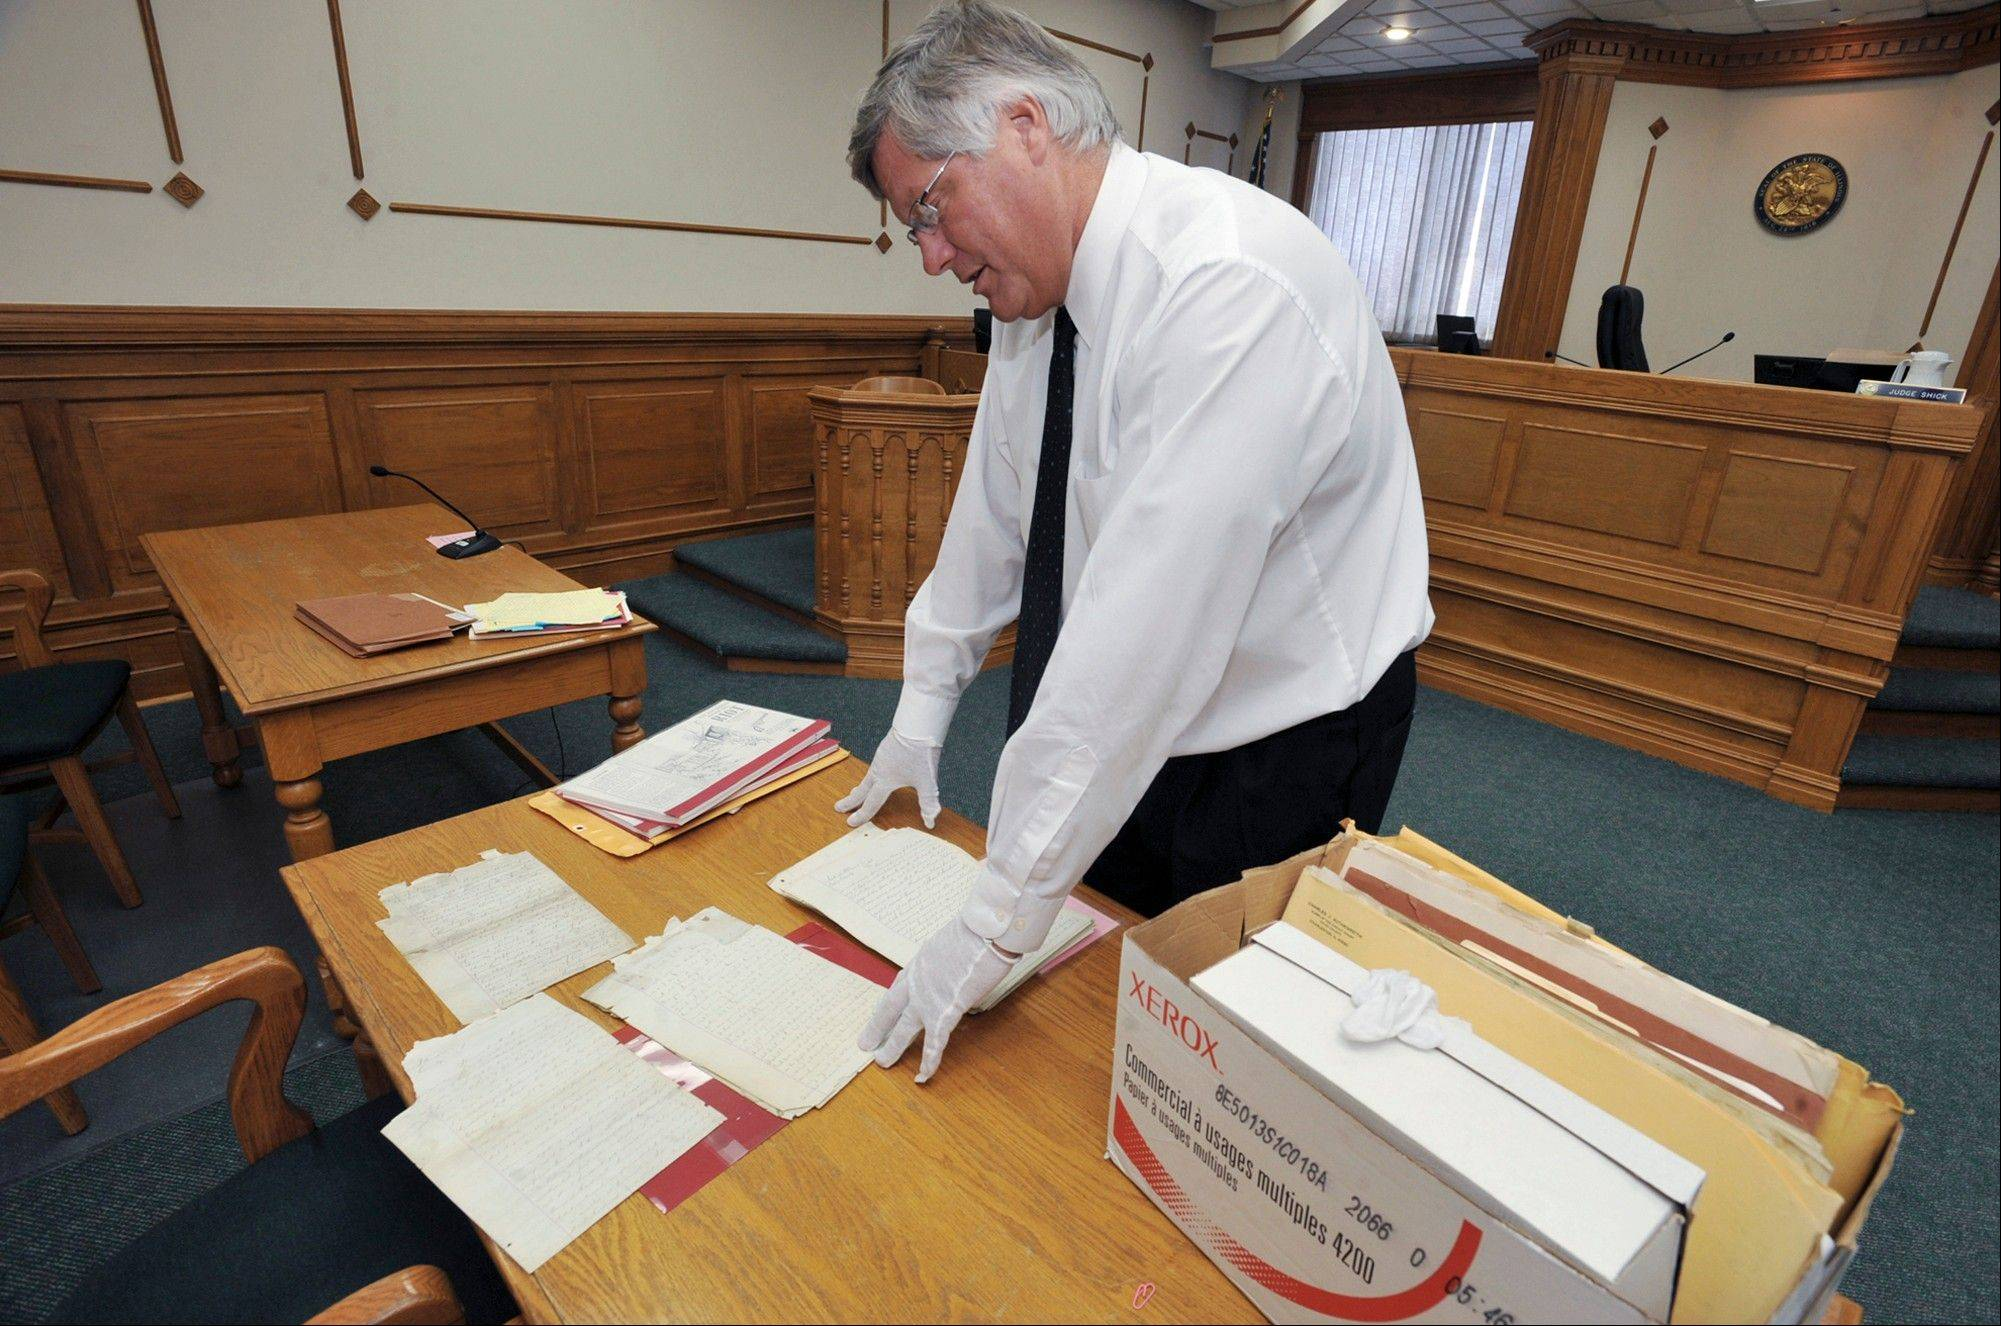 Judge Mitch Shick looks at sworn statements from Charleston Riot witnesses and participants as he spreads them out on a table at the Coles County Courthouse in Charleston.